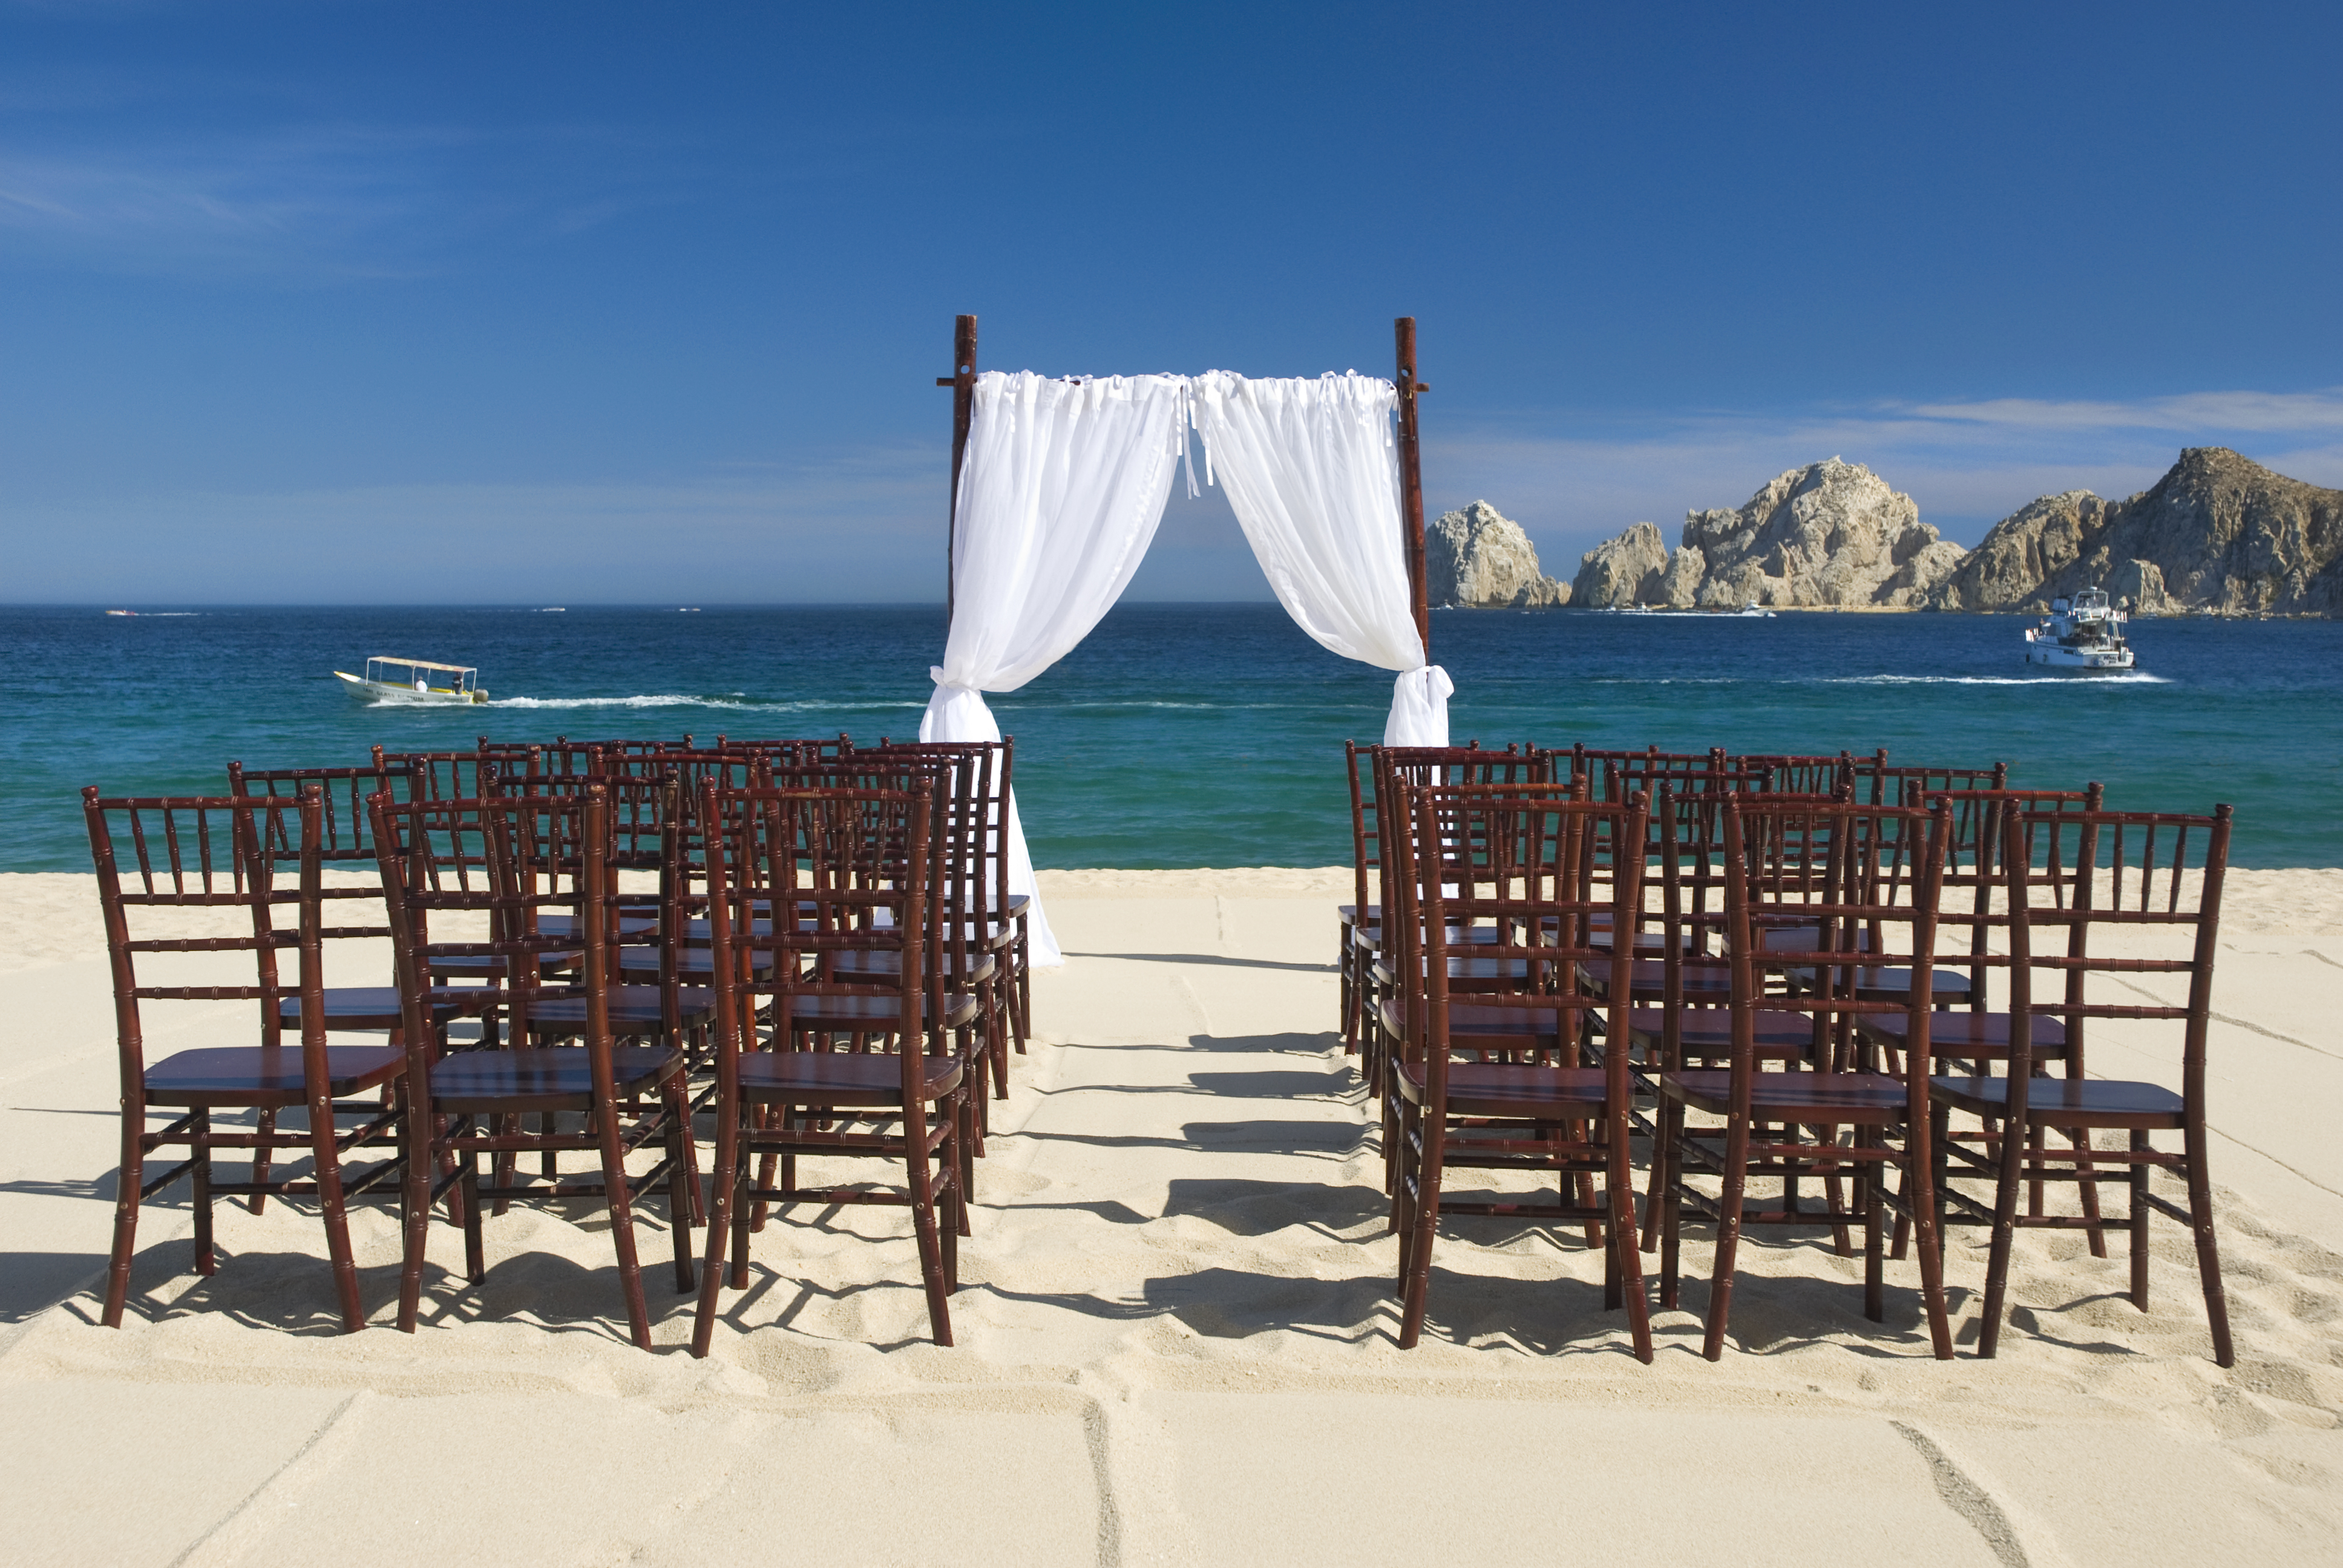 Ceremony, Inspiration, Flowers & Decor, Ceremony Flowers, Flowers, Board, Pueblo bonito oceanfront resorts spas